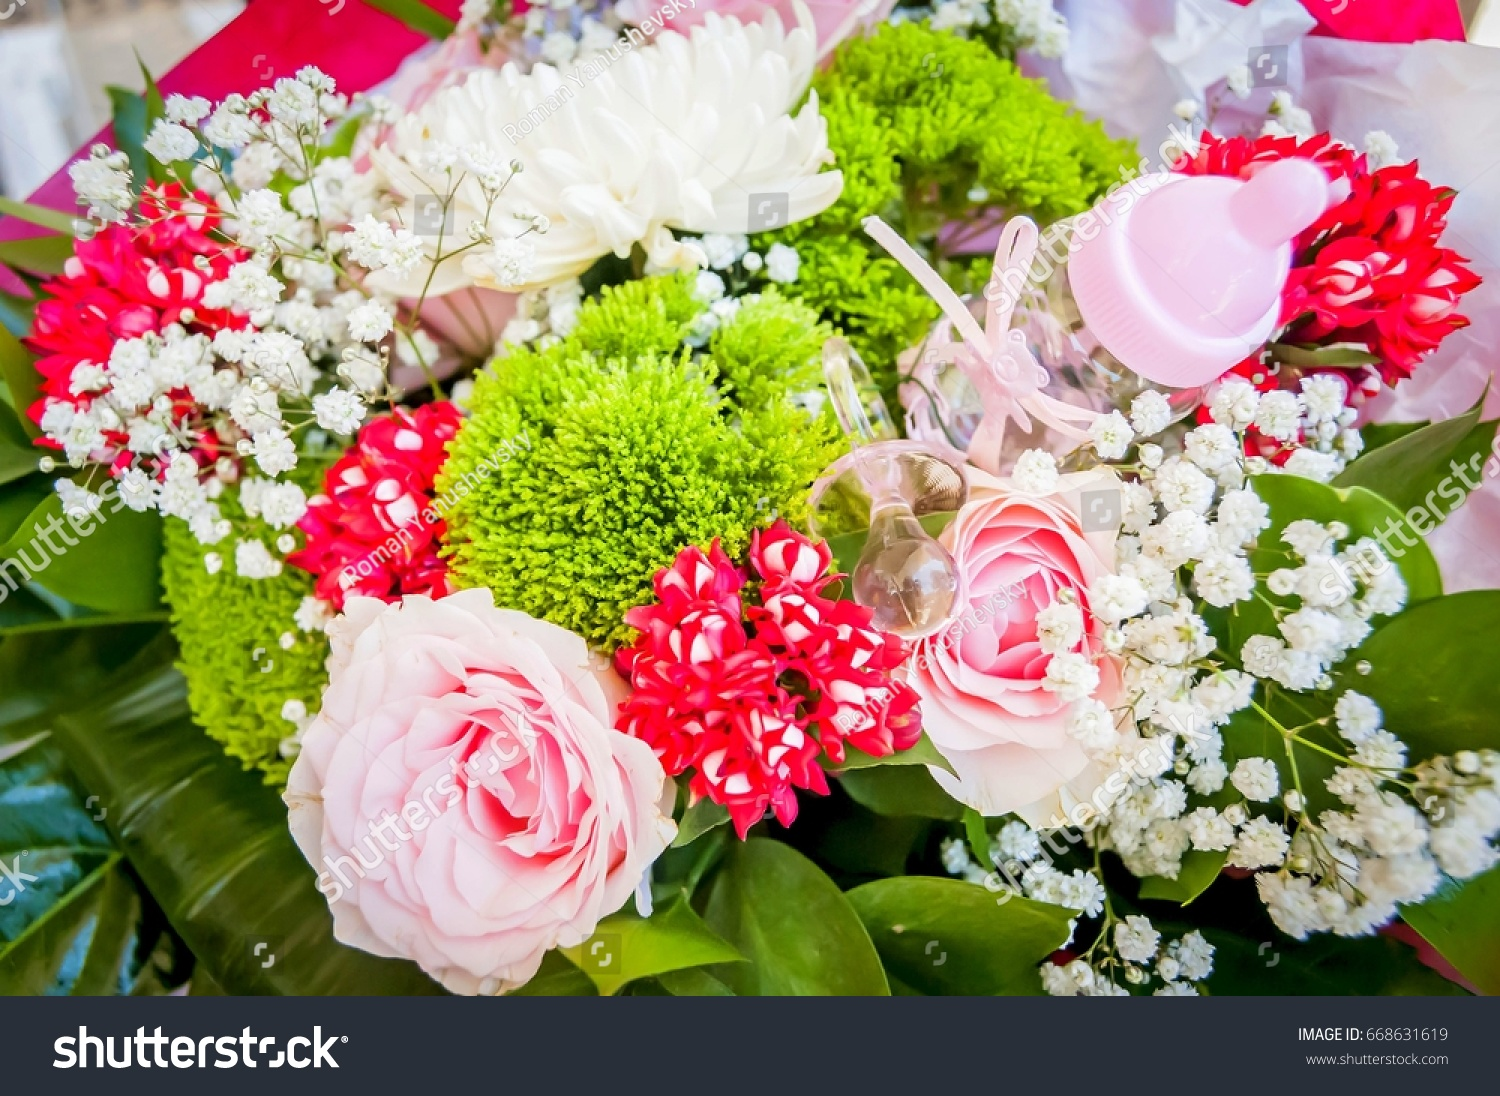 Beautiful rose flower bouquet mother new stock photo royalty free a beautiful rose flower bouquet for a mother of a new born baby girl with baby izmirmasajfo